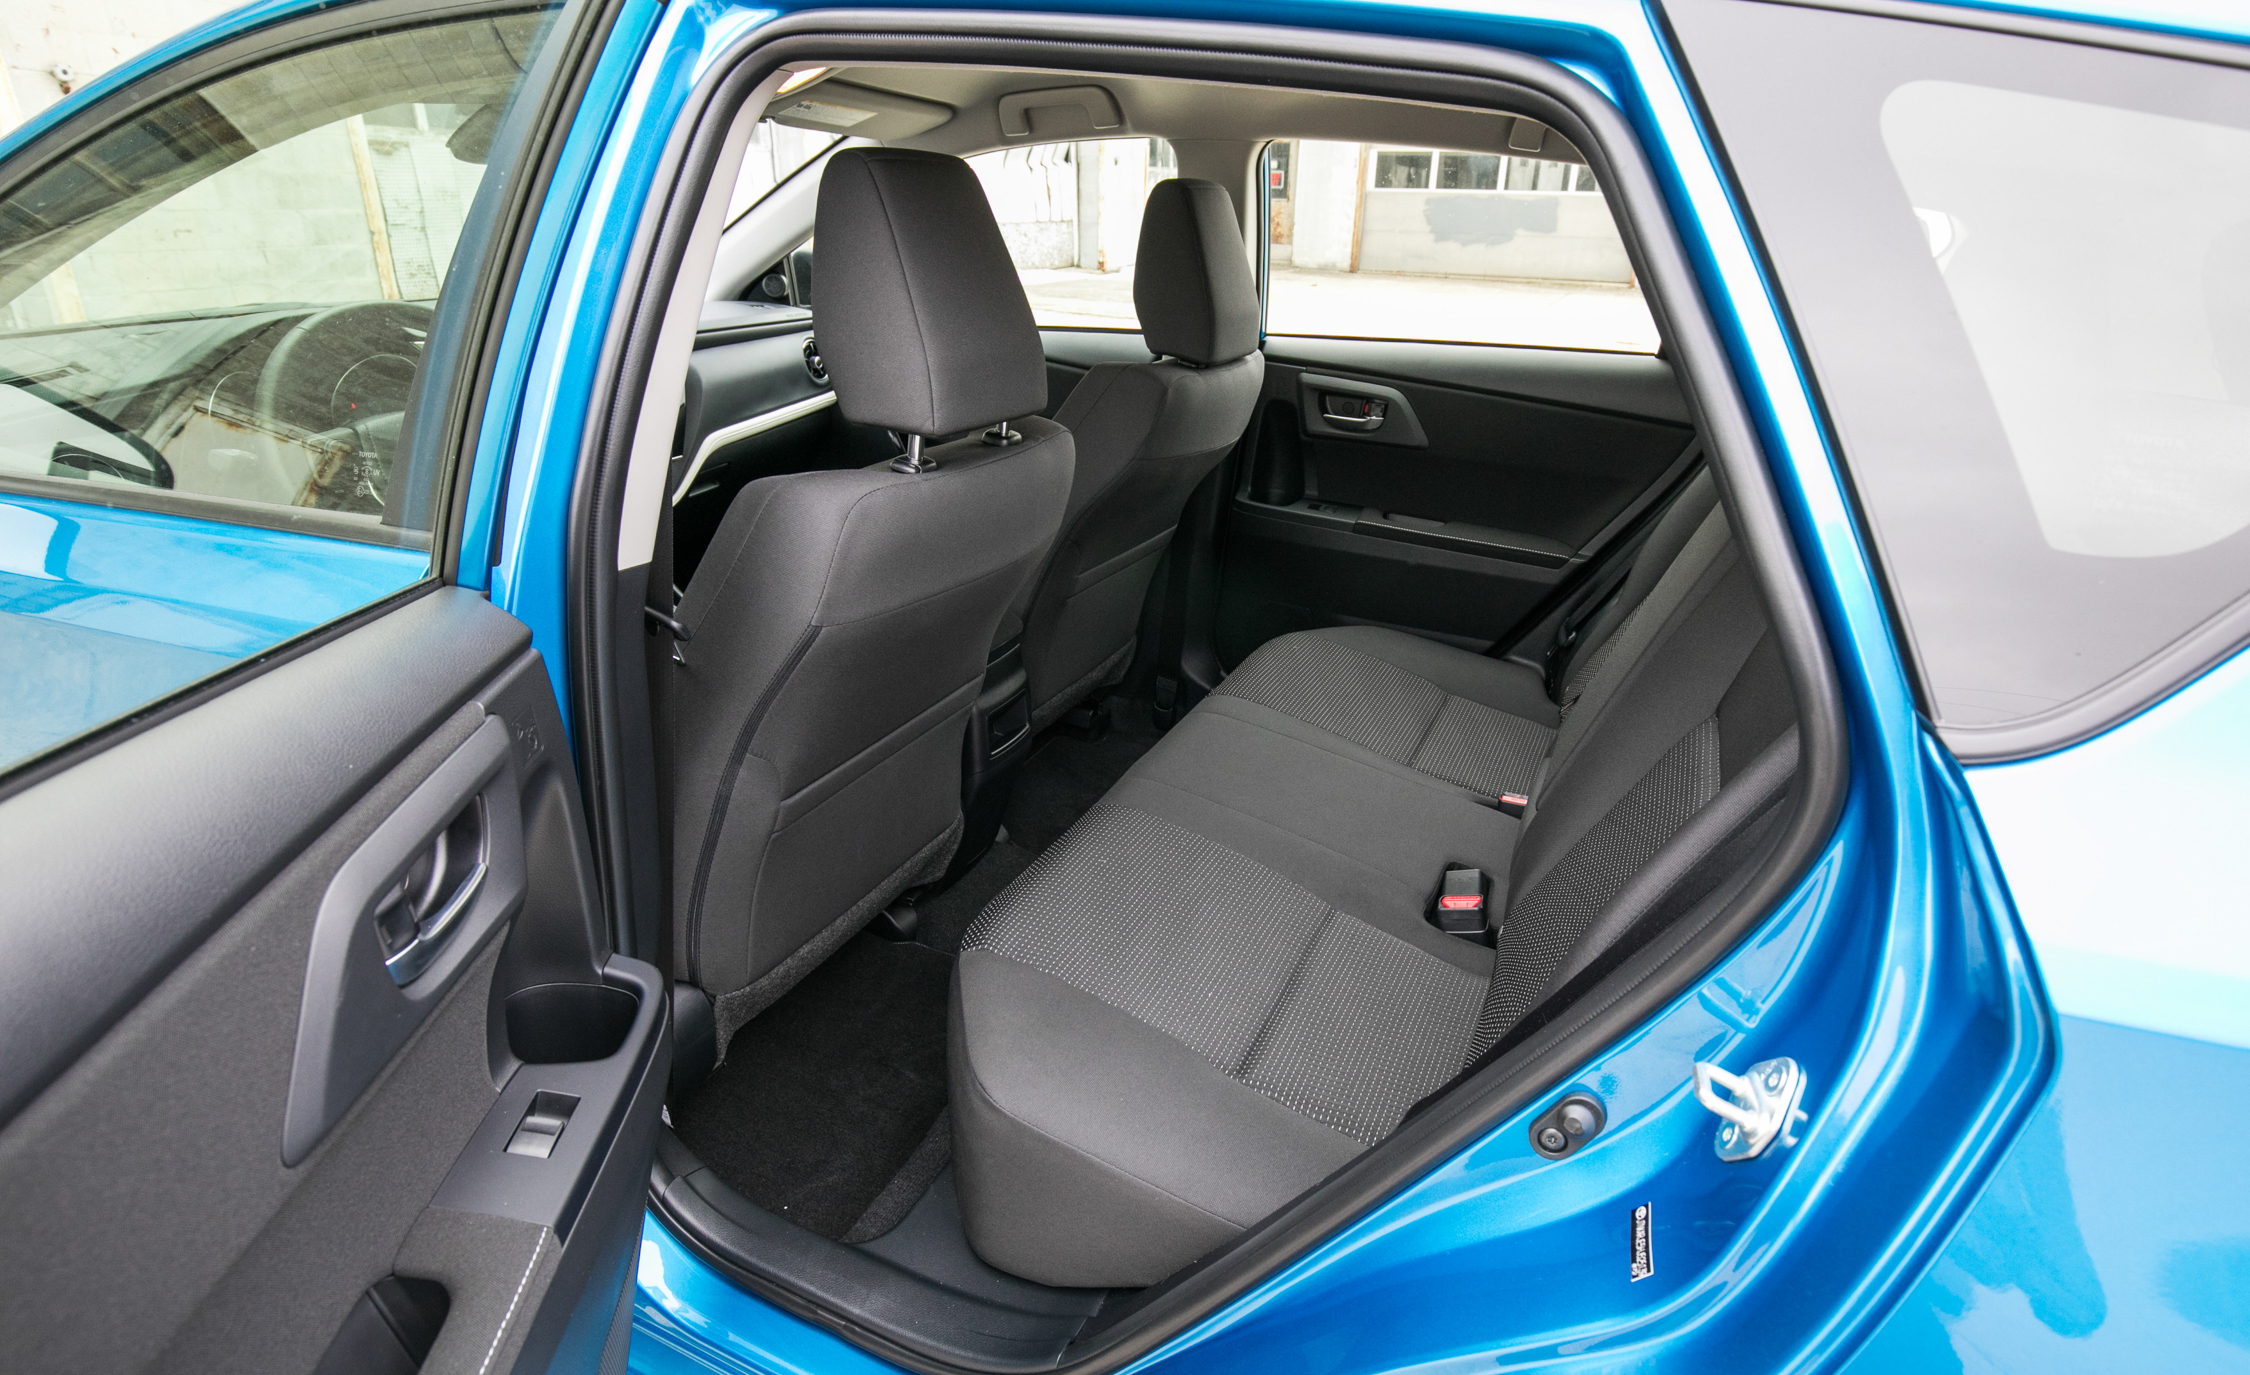 2017 Toyota Corolla IM Hatchback Interior Seats Rear Space (Photo 48 of 52)